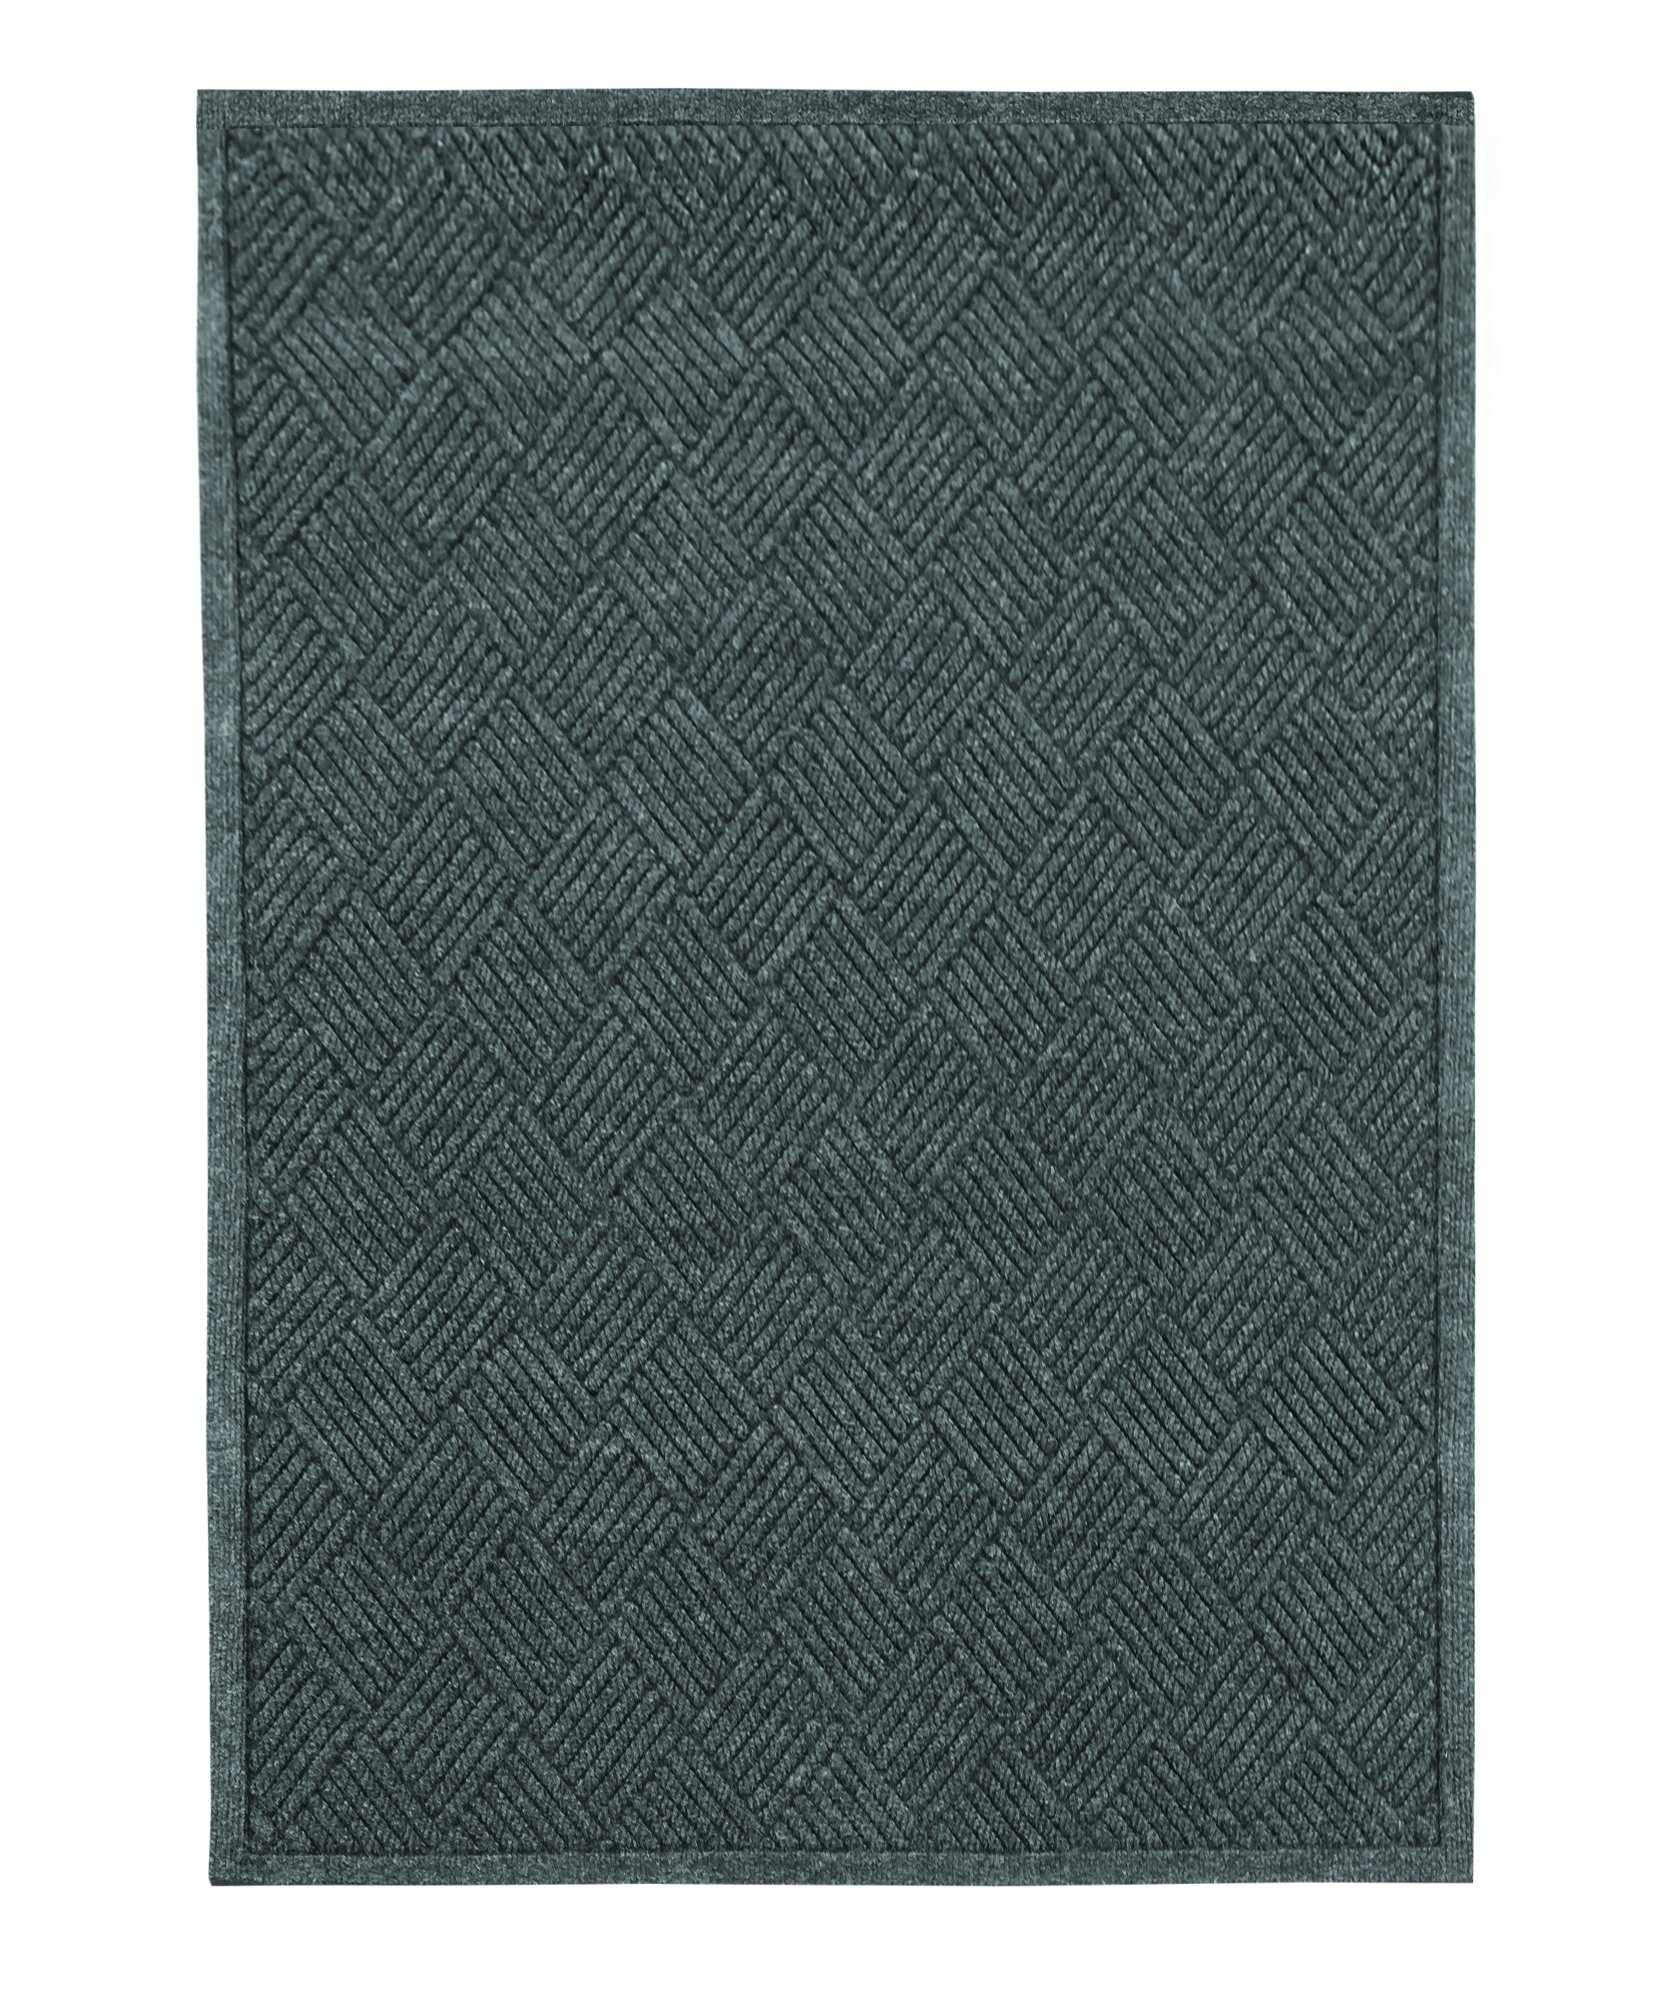 Guardian EcoGuard Diamond Indoor Wiper Floor Mat, Recycled Plactic and Rubber, 3'x4', Charcoal Black by Guardian